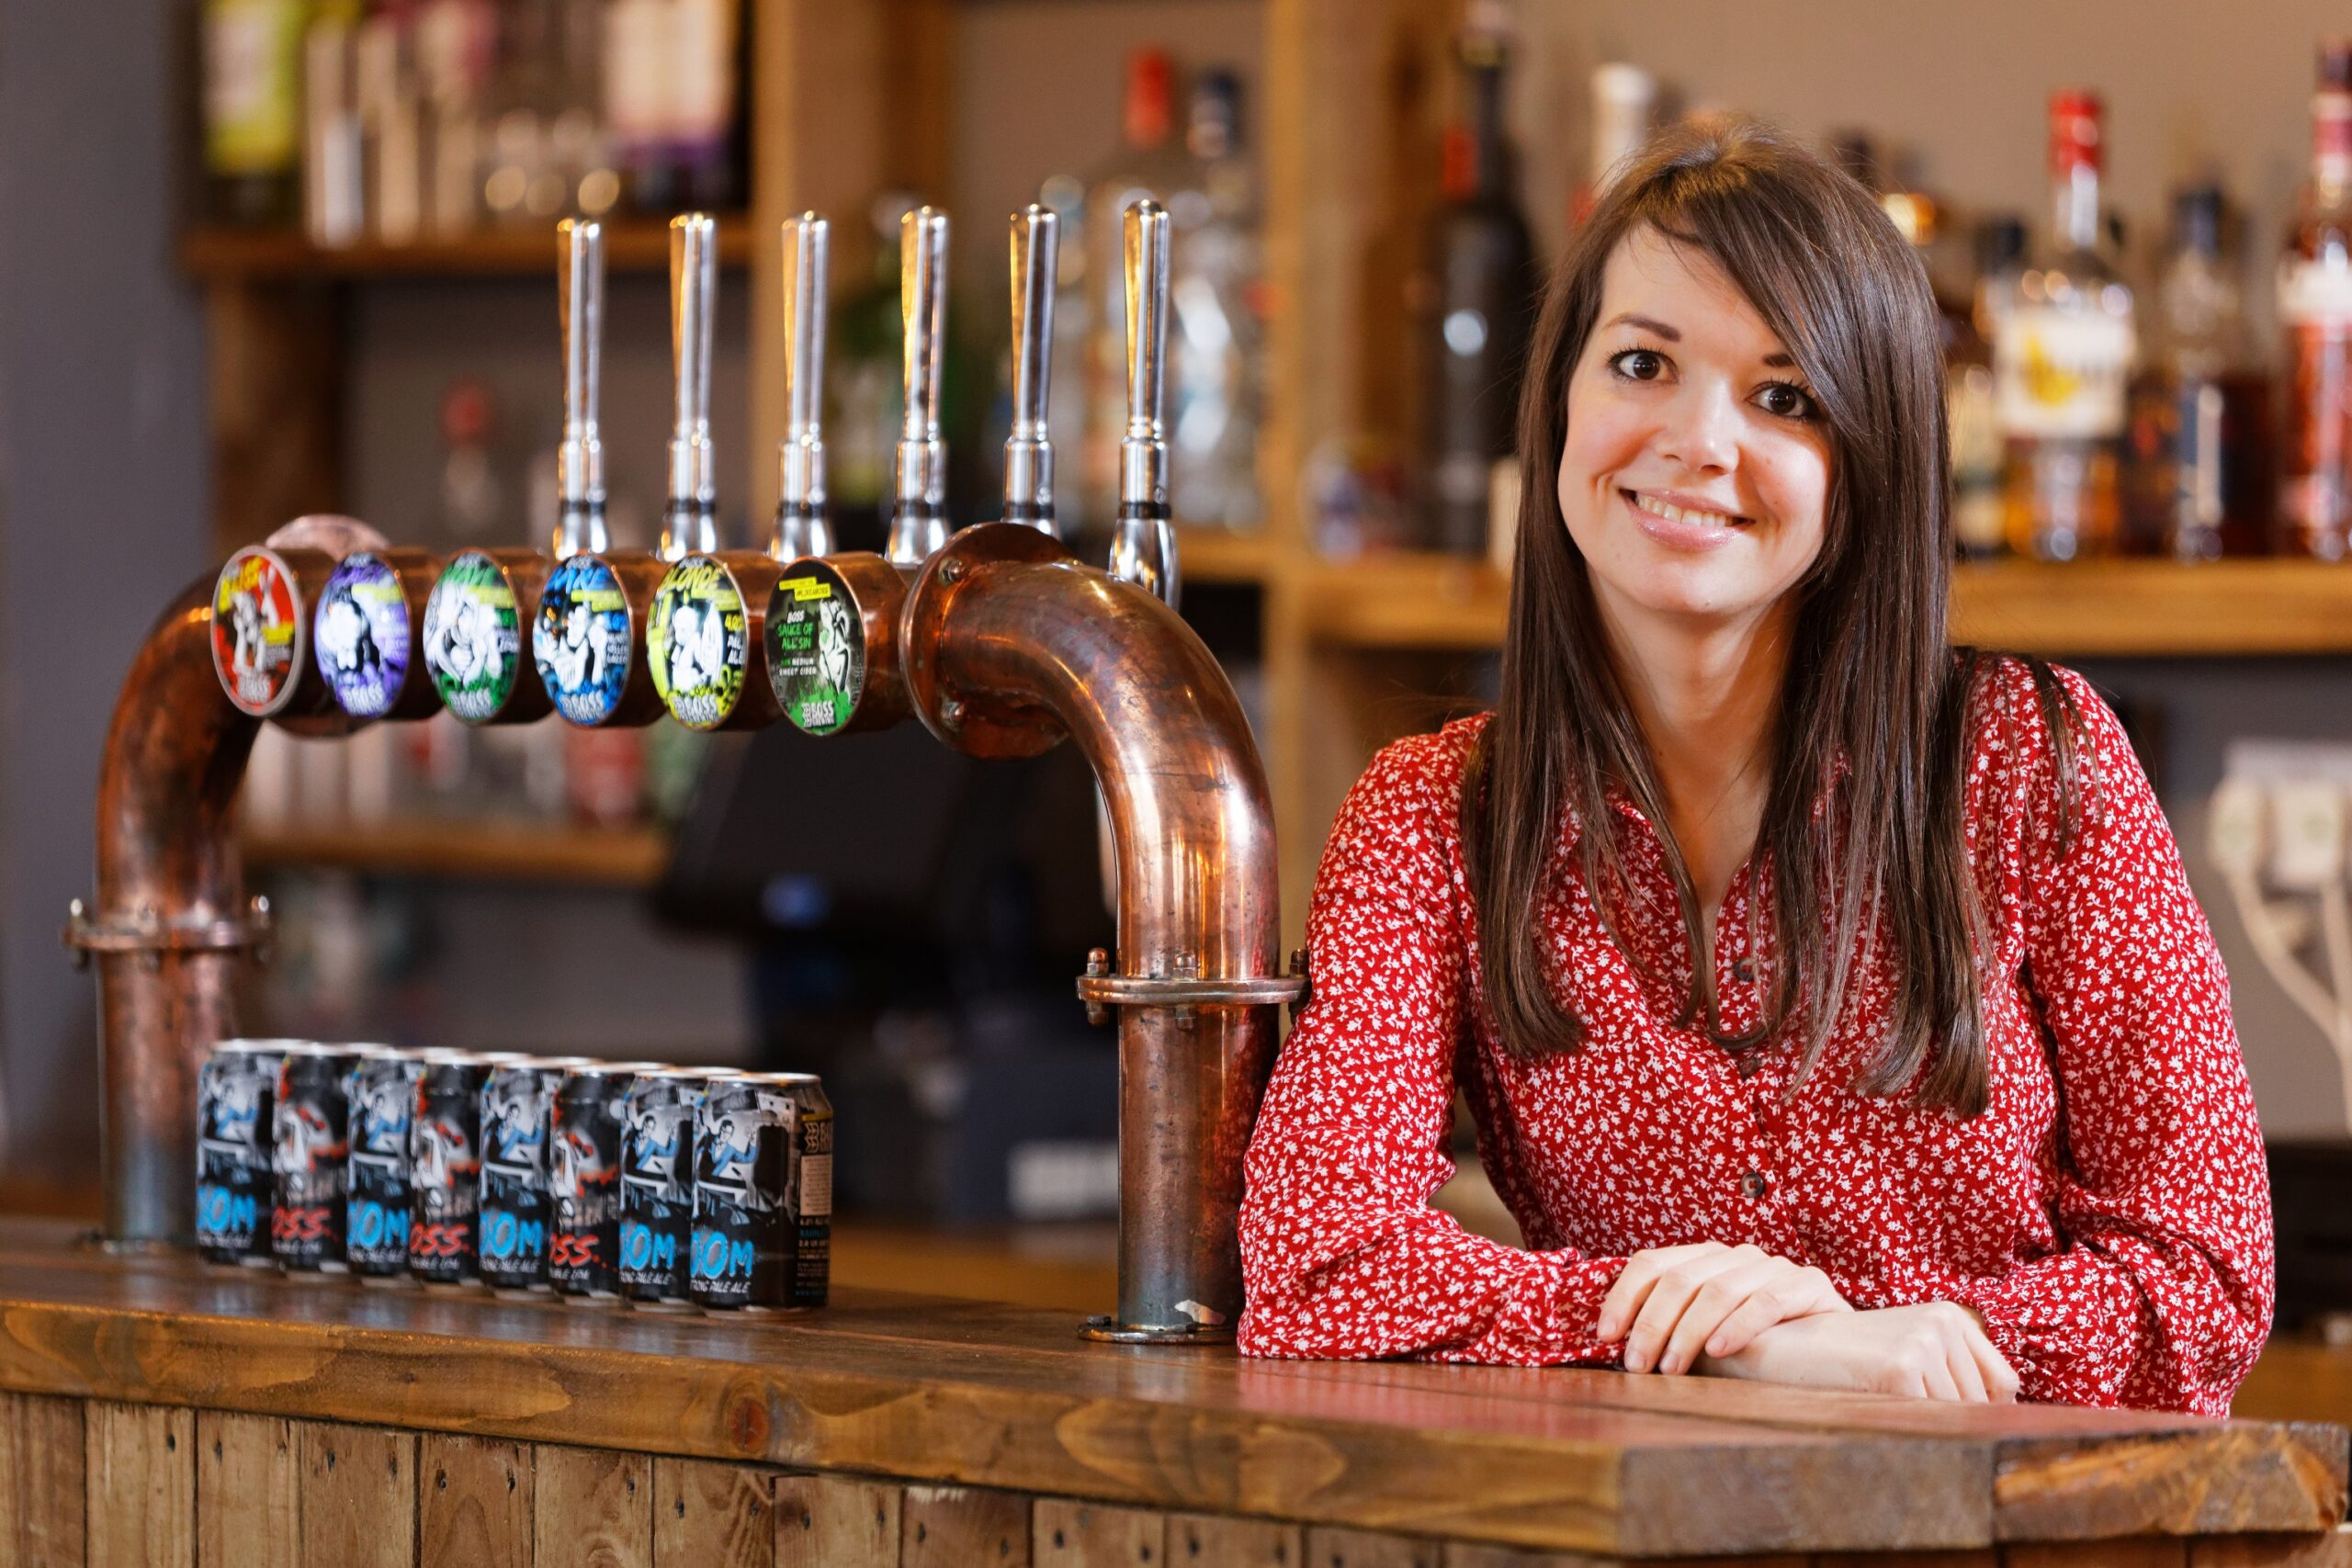 Boss Brewing owner rated as one of the UK's top mumpreneurs